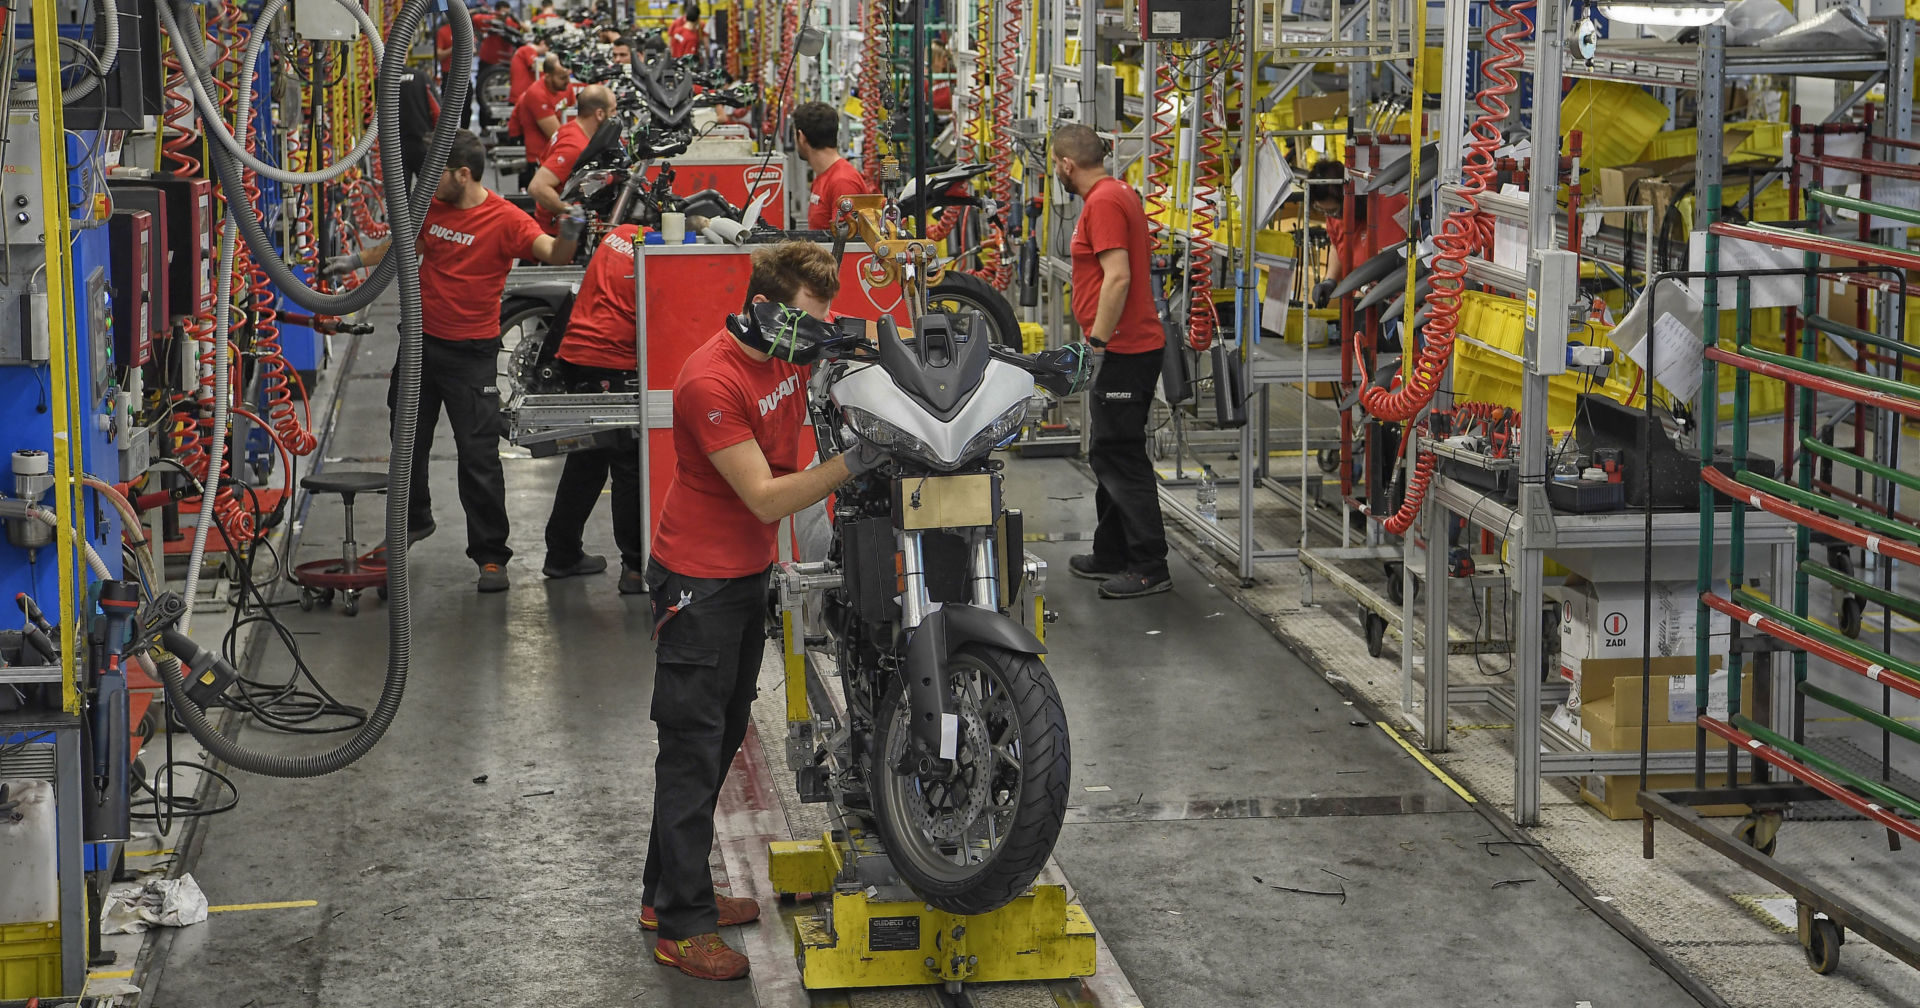 Ducati workers on the Multistrada assembly line in Italy. Photo courtesy of Ducati.